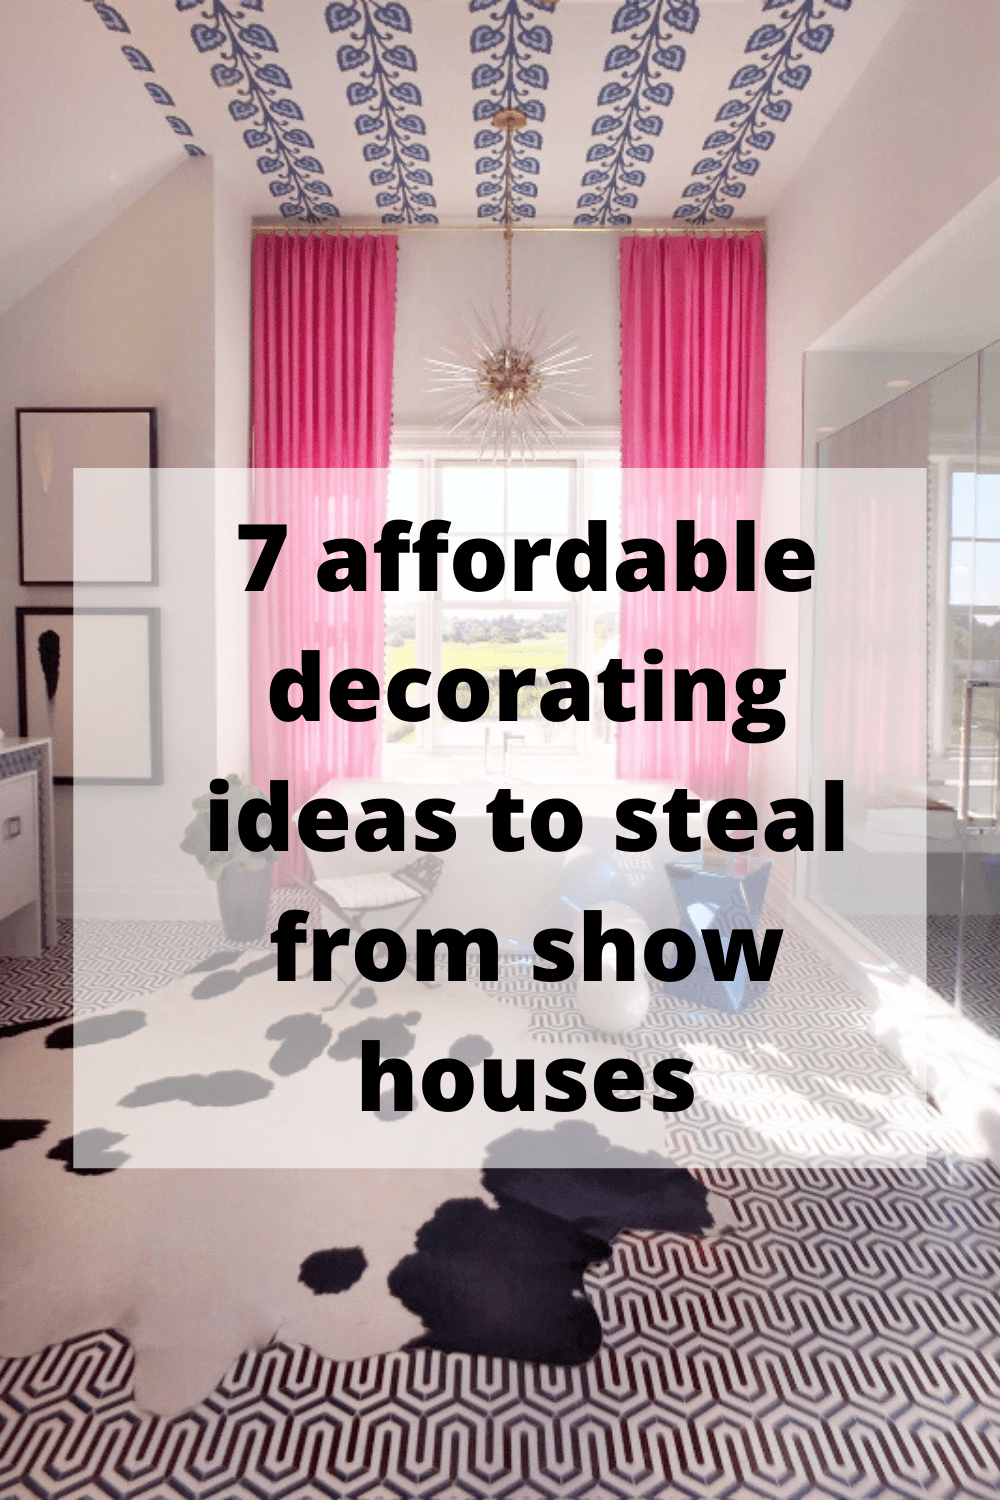 7 affordable decorating ideas to steal from show houses